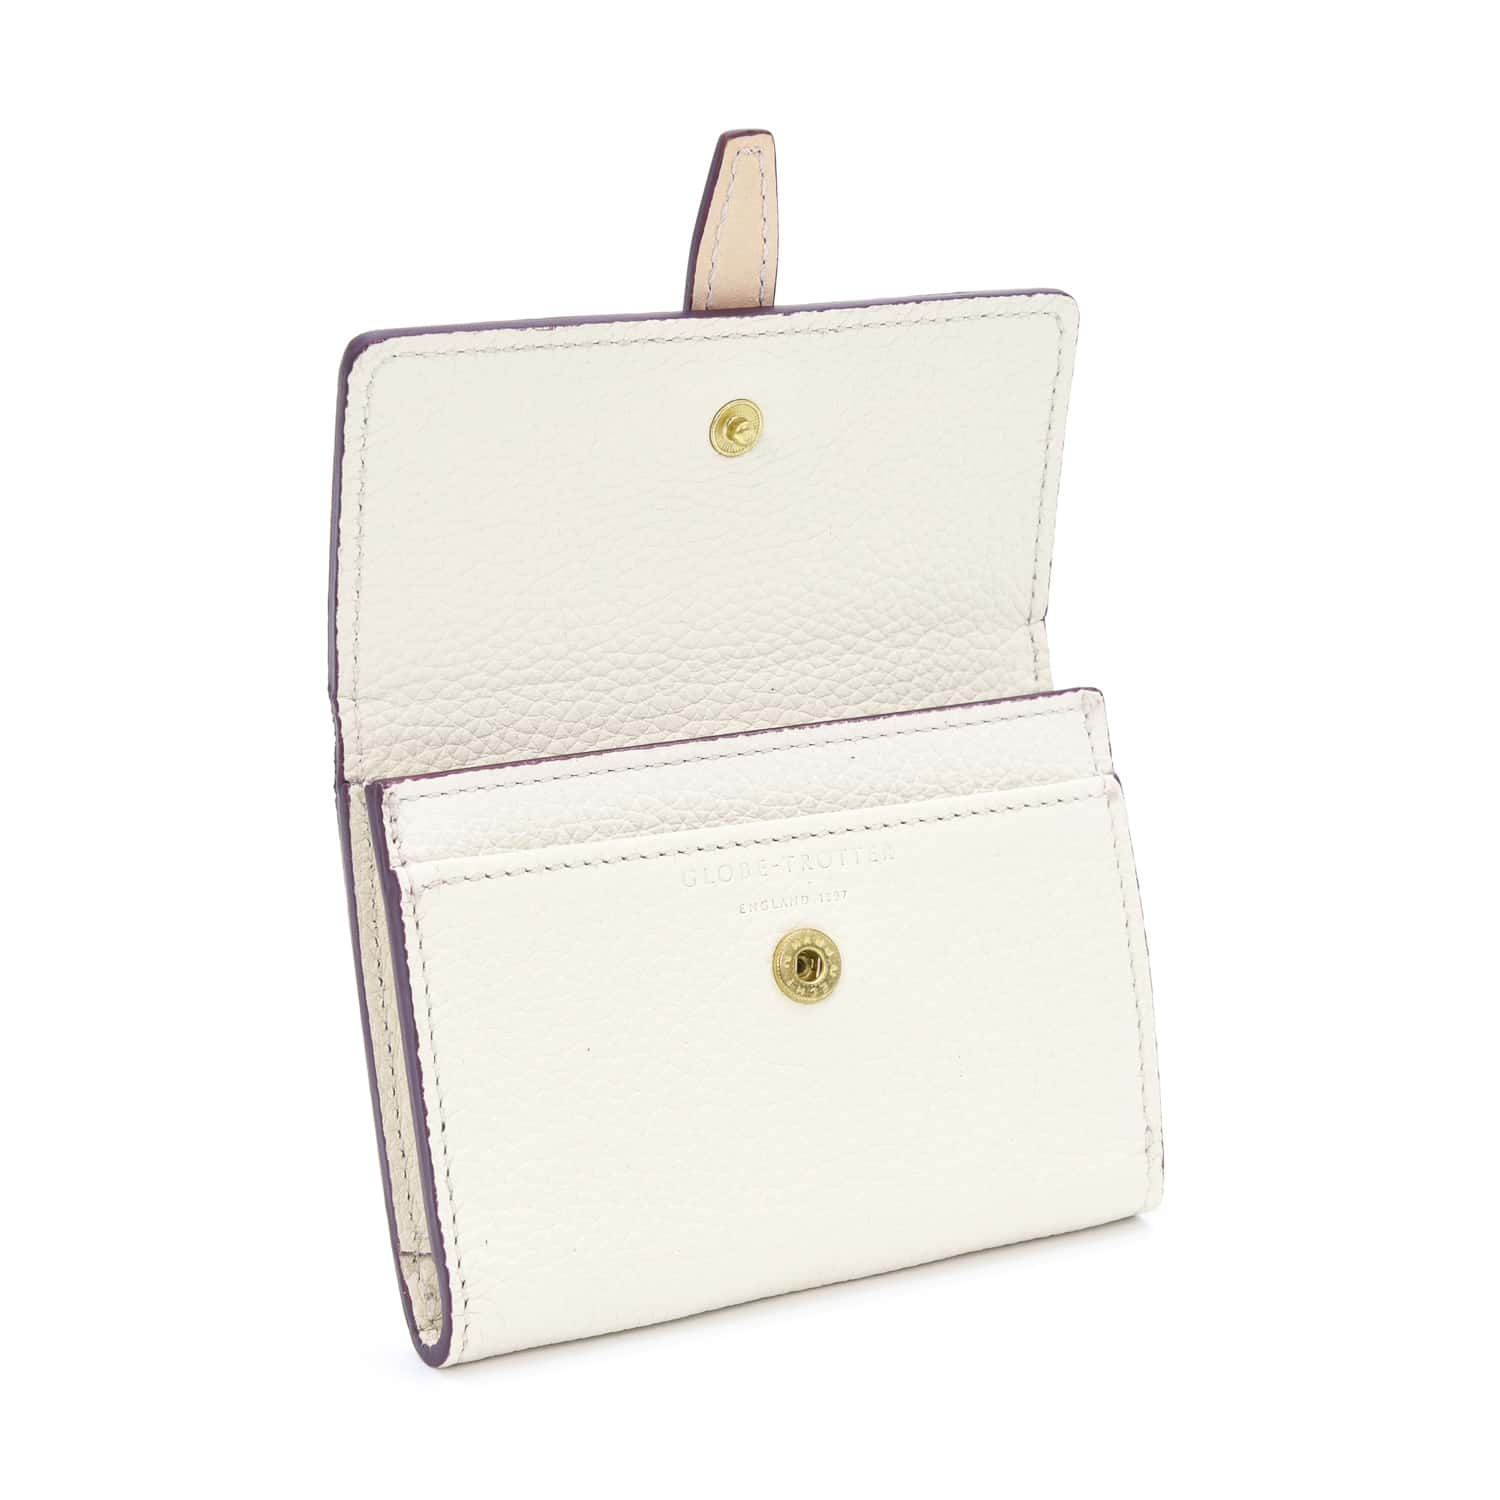 Centenary Leather · Ladies Name Card Holder - Ivory